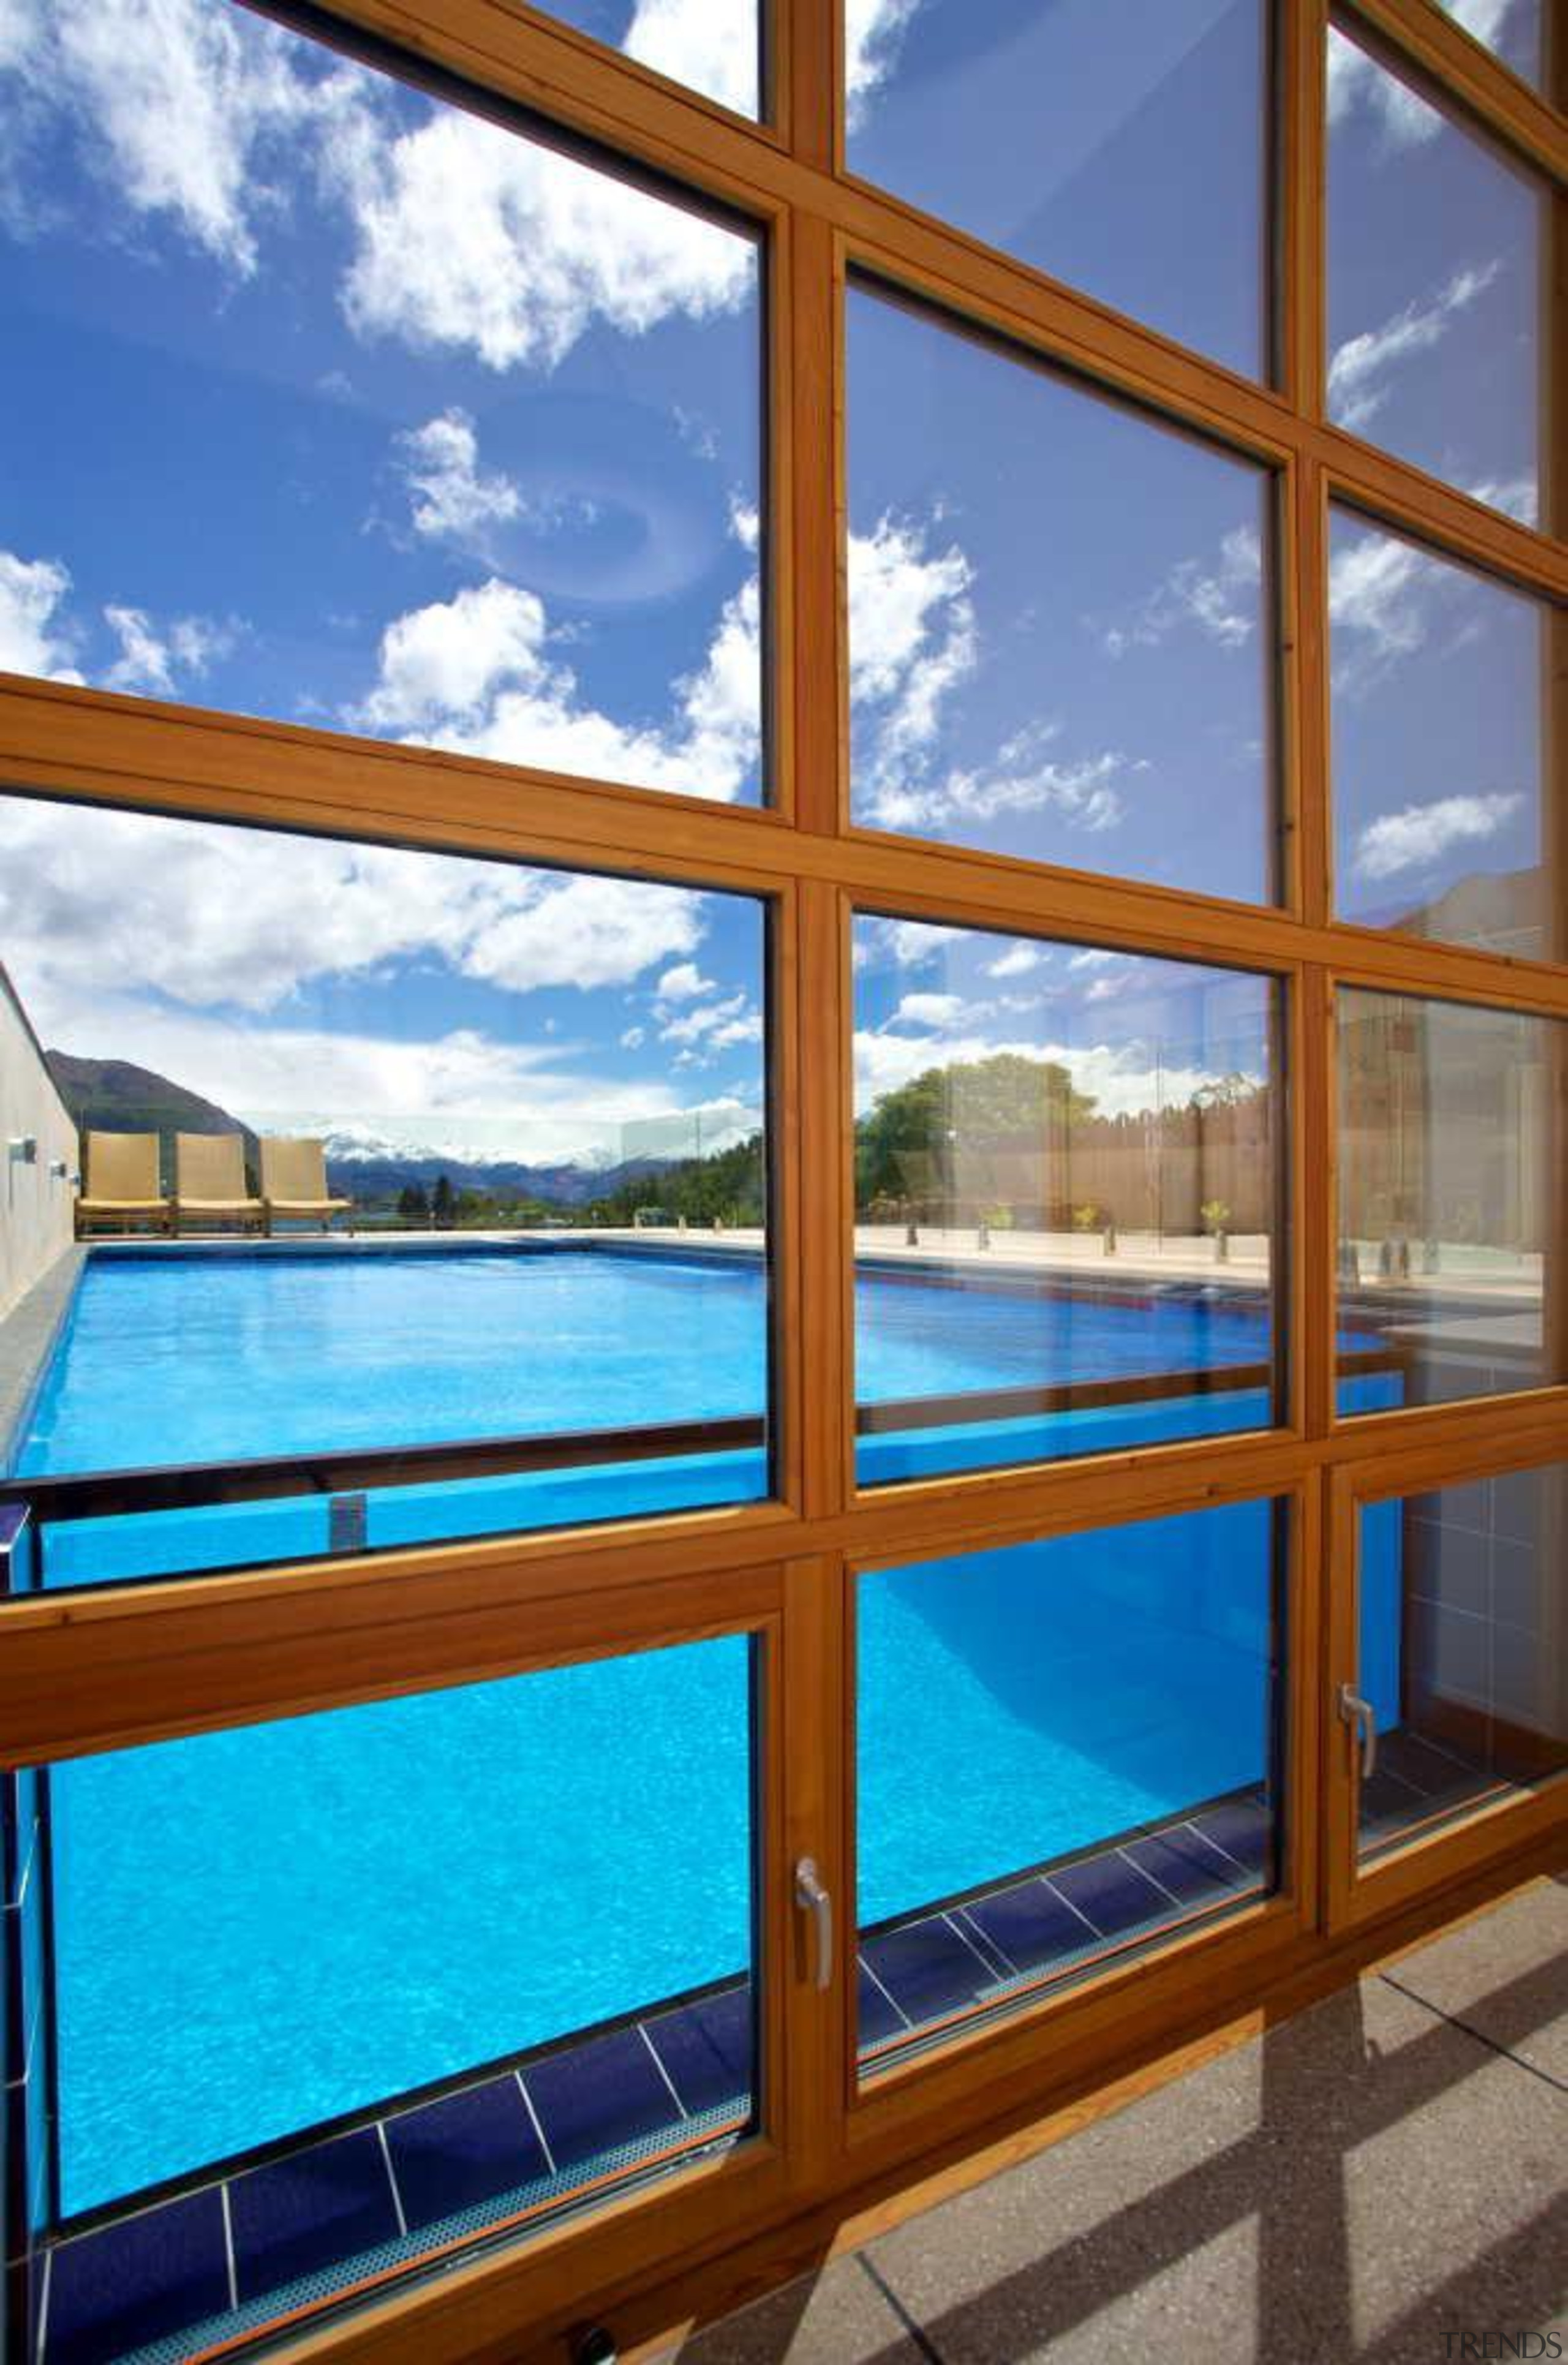 This pool by Mayfair Pools laps against the apartment, condominium, daylighting, glass, property, real estate, sky, swimming pool, window, blue